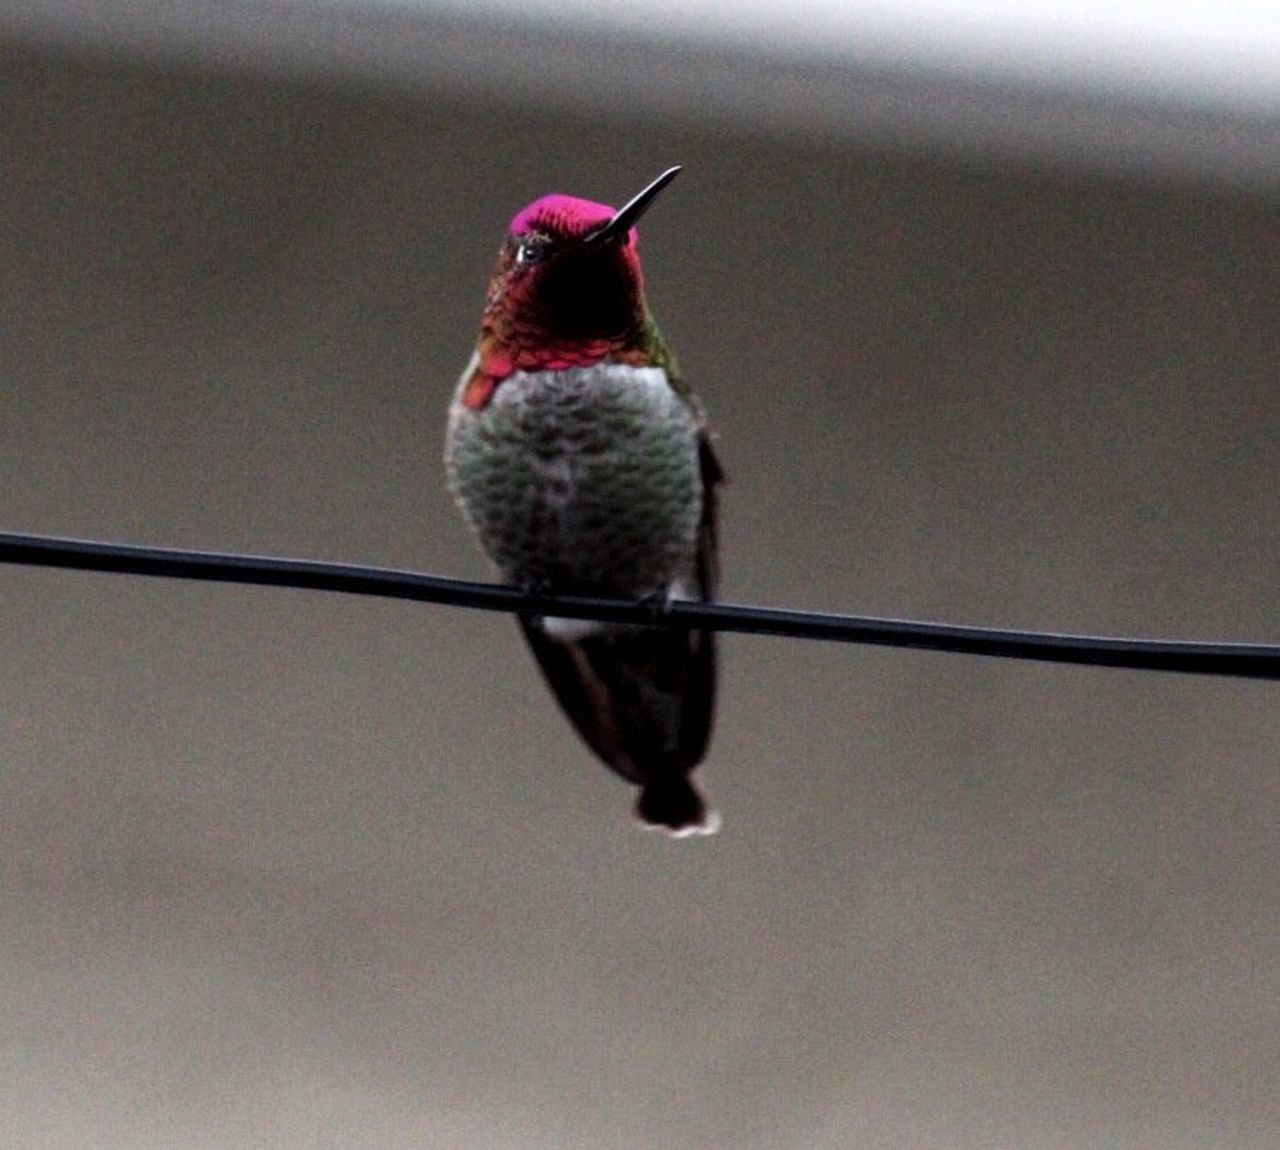 Hummingbird One Animal Animal Themes Bird Animals In The Wild Perching Focus On Foreground Animal Wildlife No People Hummingbird Low Angle View Day Close-up Nature Outdoors